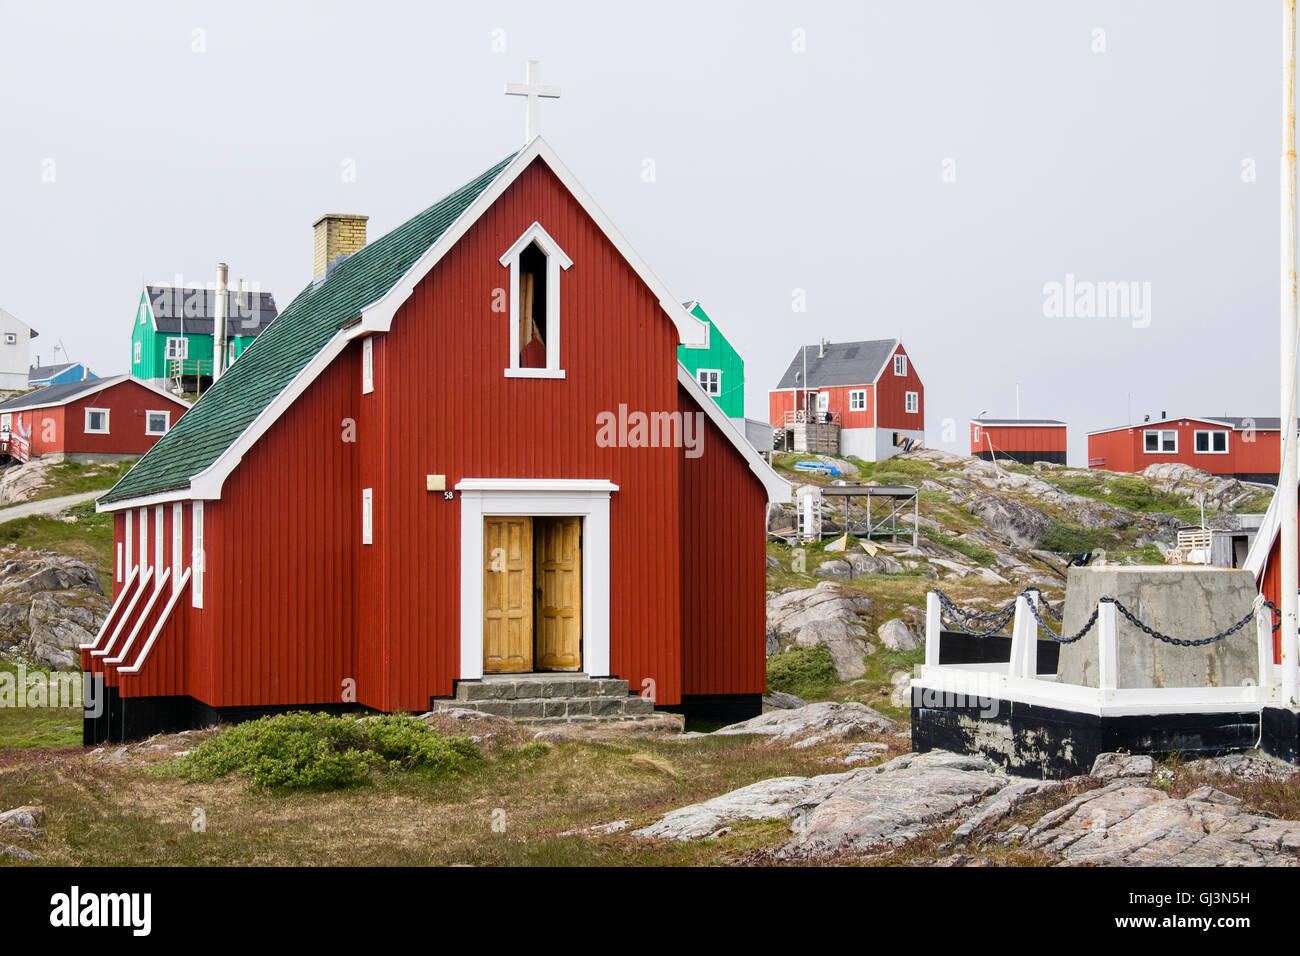 Traditional colourful wooden houses and small Inuit church. Itilleq, Qeqqata, Greenland. - Stock Image